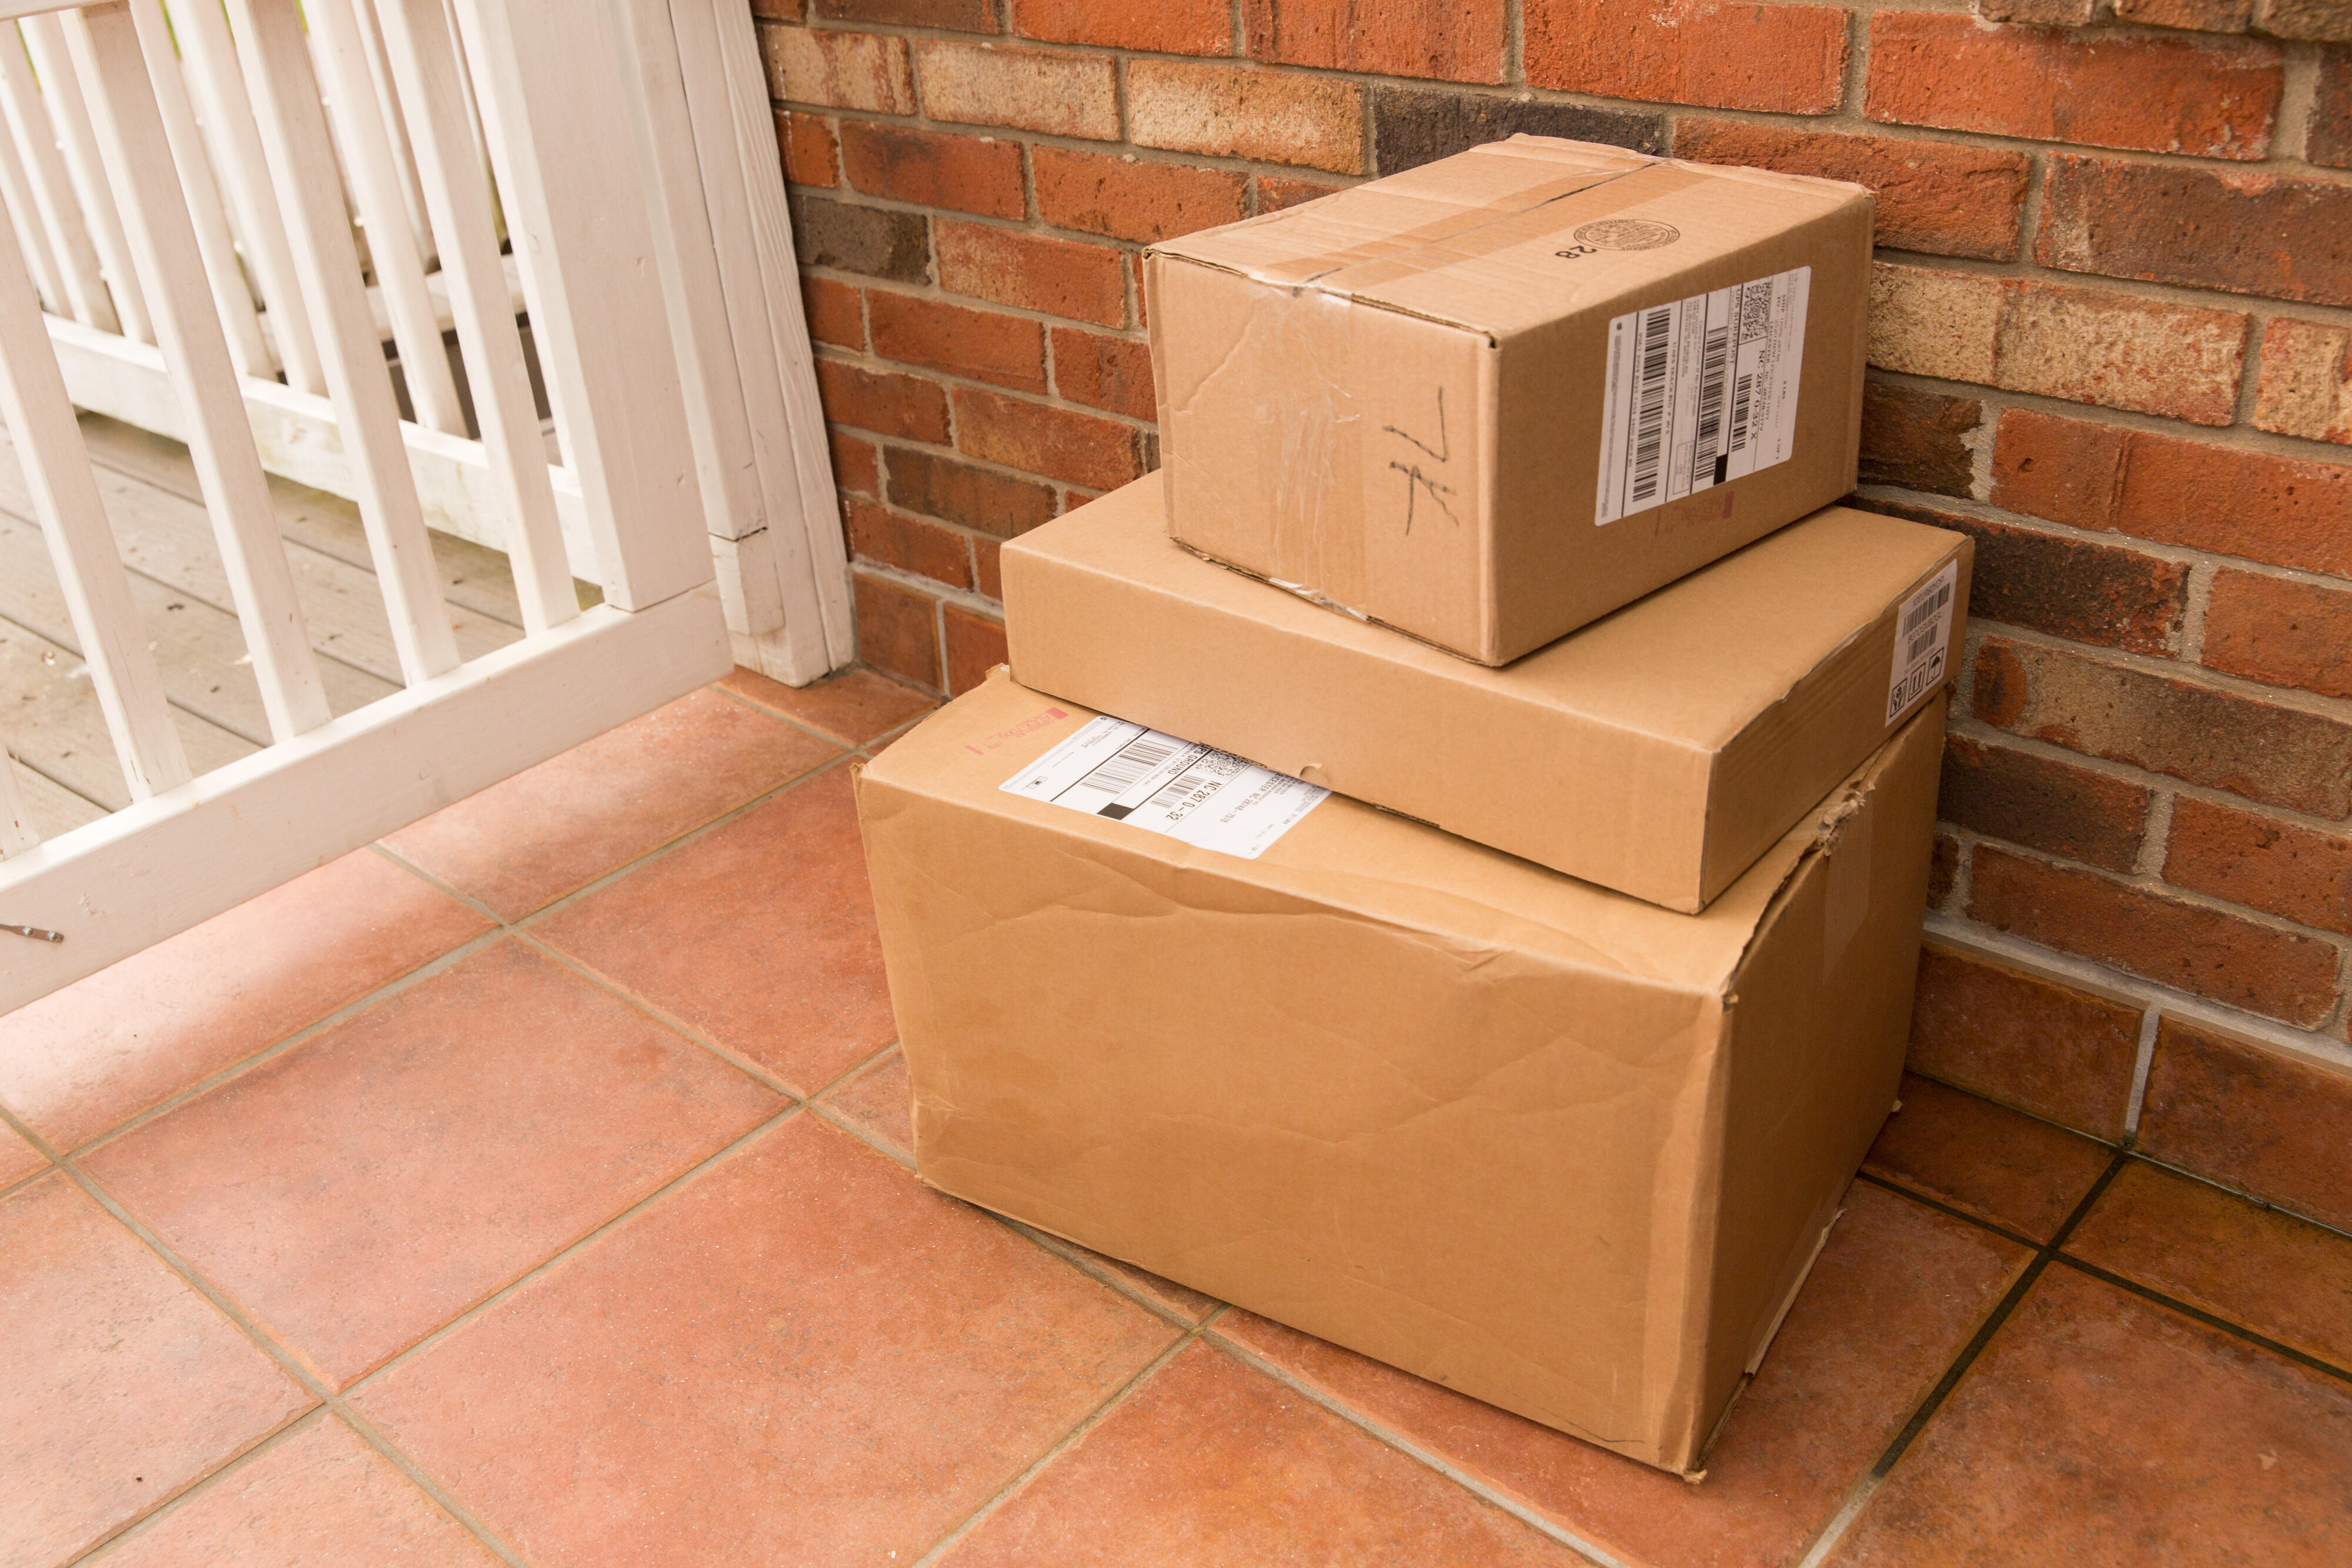 21-mail-packages-usps-fedex-amazon-ups-doorstep-mailbox-letters-shipping-coronavirus-stay-at-home-2020-cnet